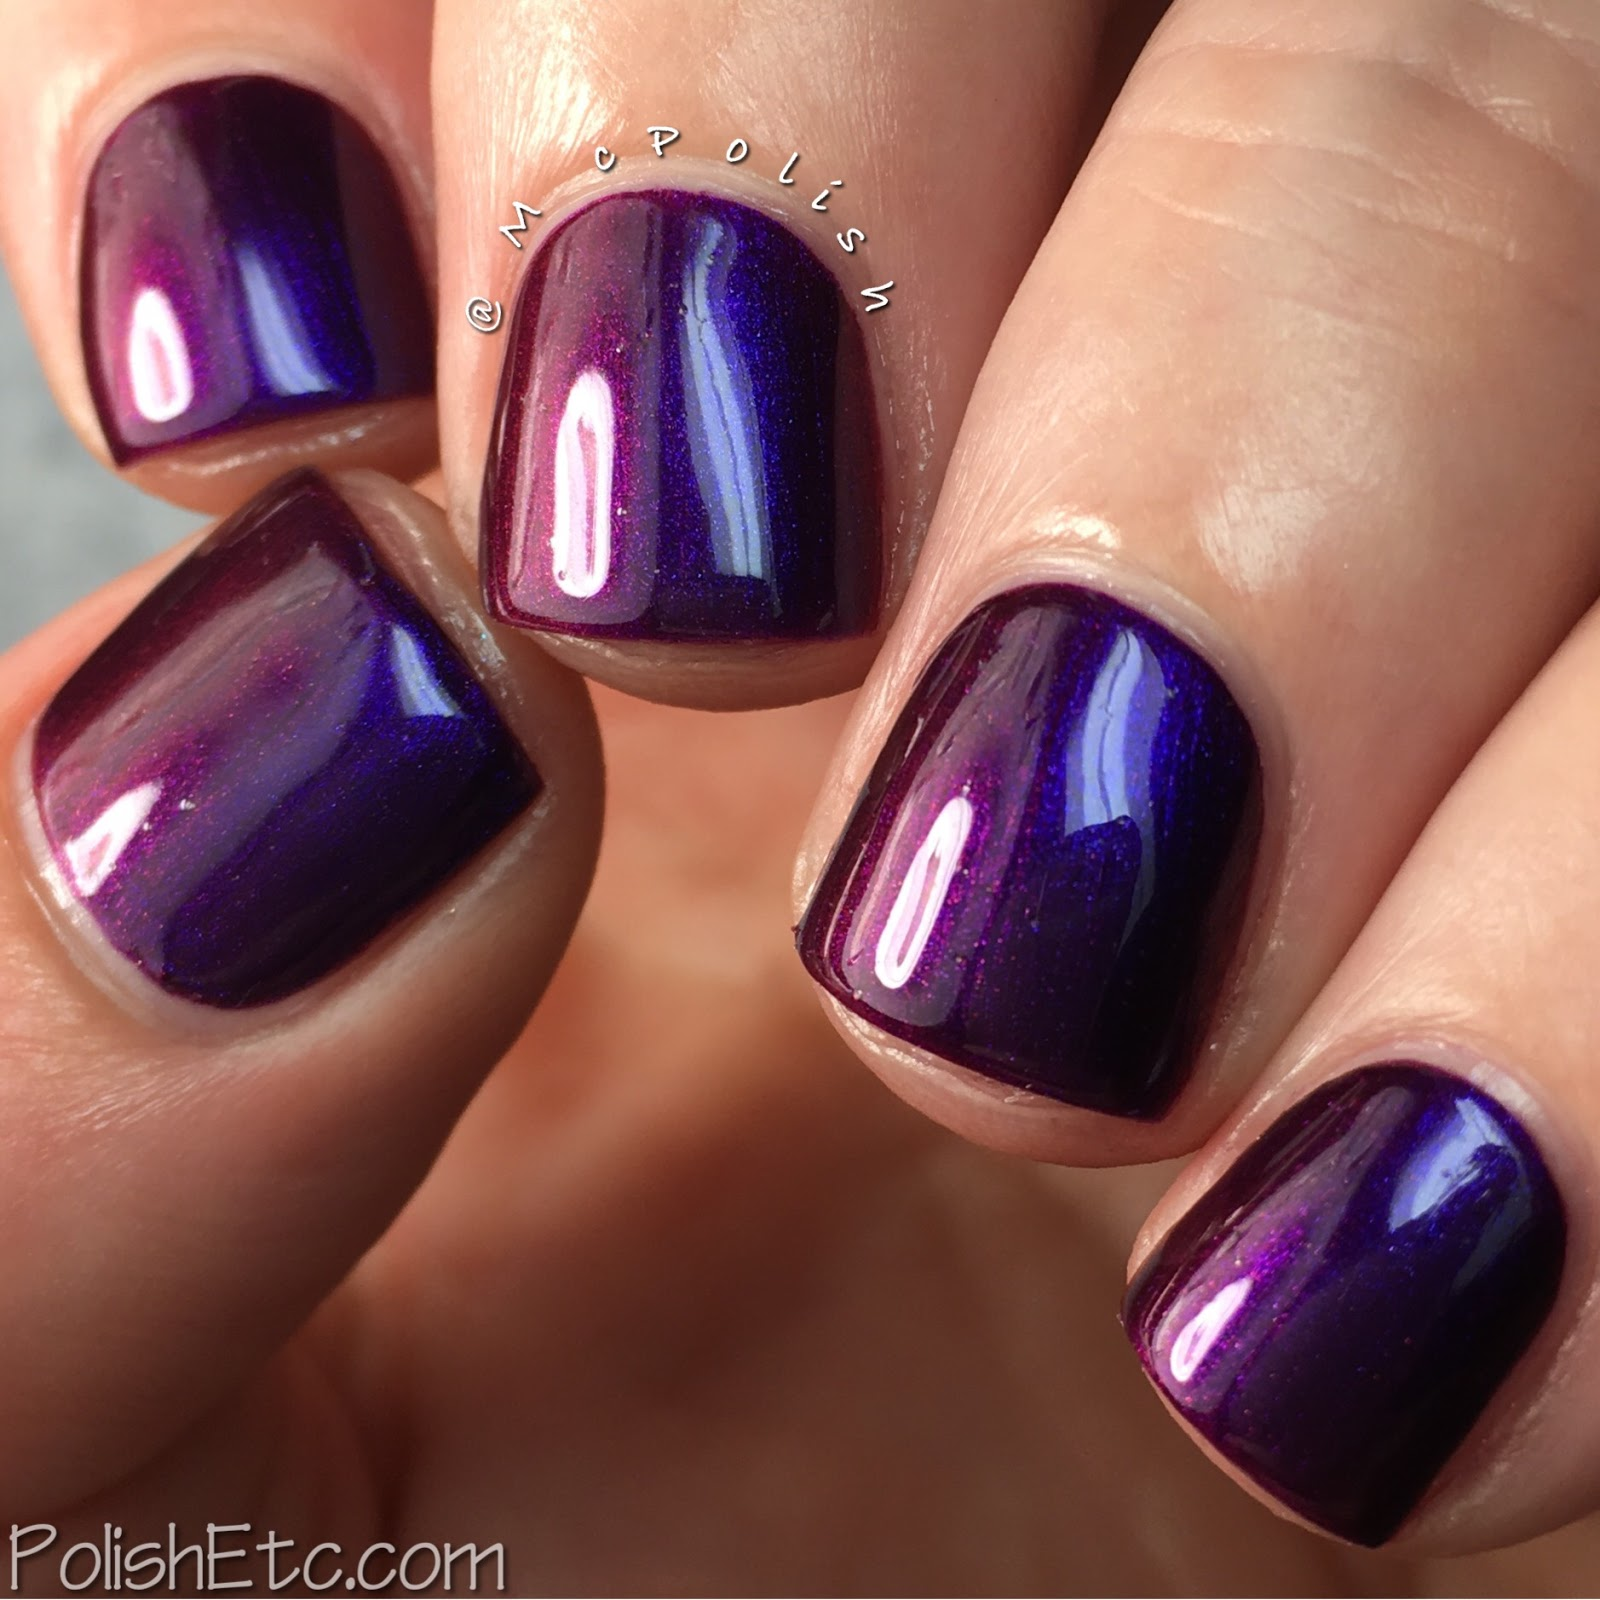 Great Lakes Lacquer - Polishing Poetic Collection - McPolish - I Carry Your Heart